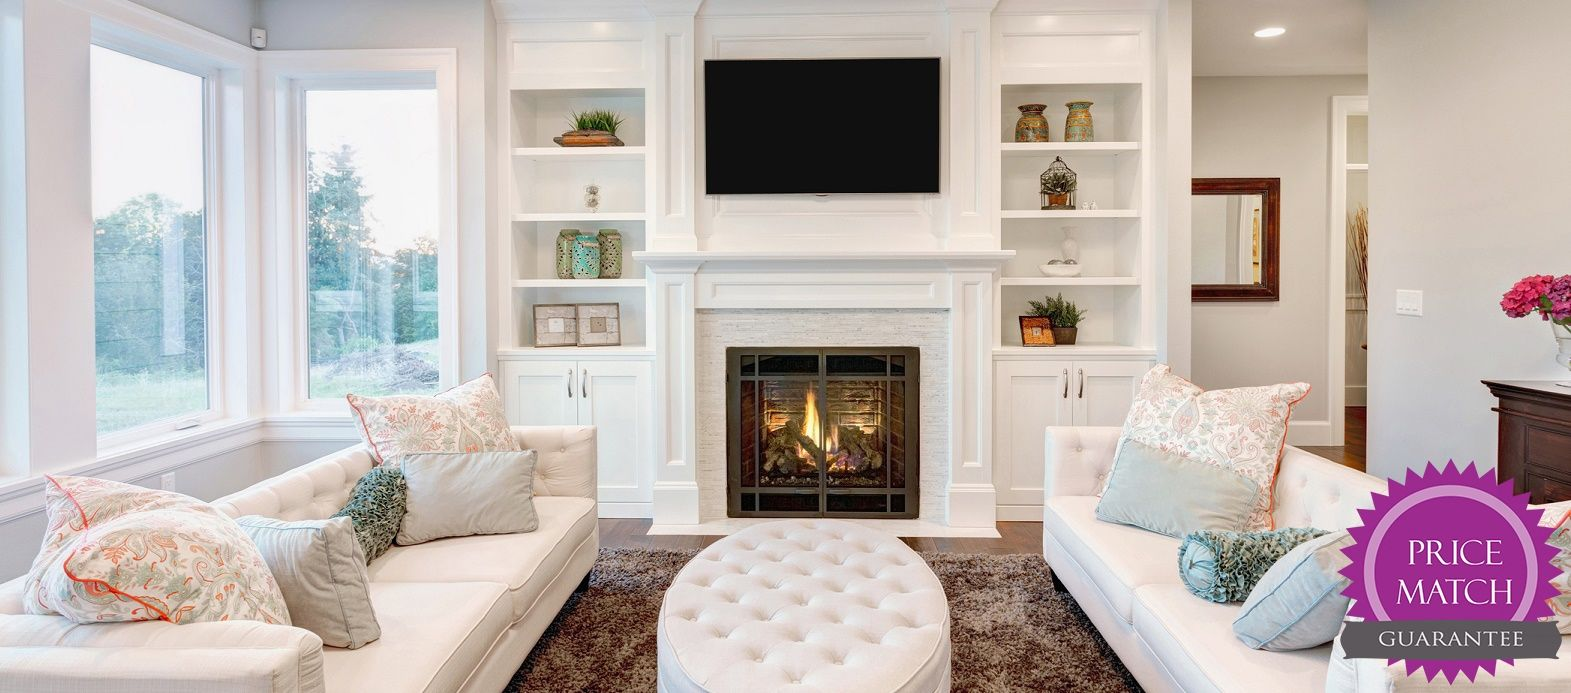 size las clearance design harvey sets online vegas stores of fixer furniture vuitton room living best sale for sofa louis discount outlet cheap full free under nevada shipping awesome couches cupboard